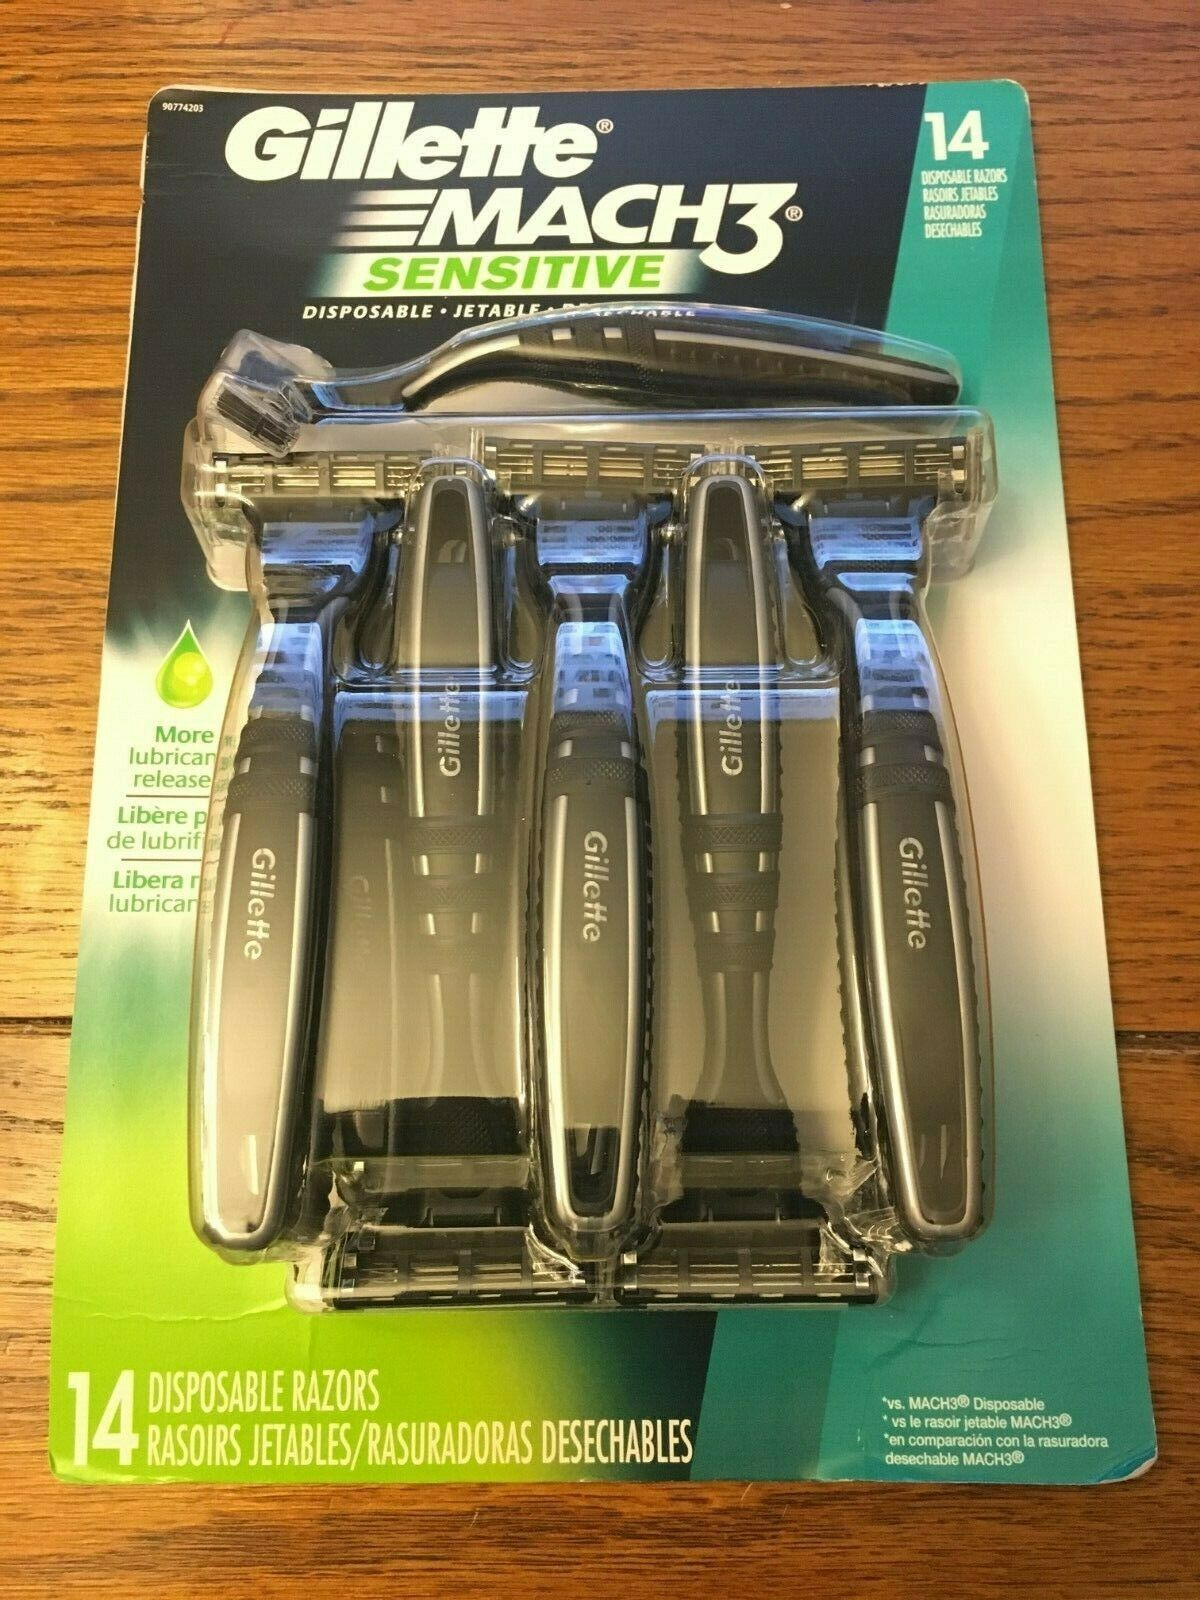 Gillette MACH3 Disposable Razor 14 count